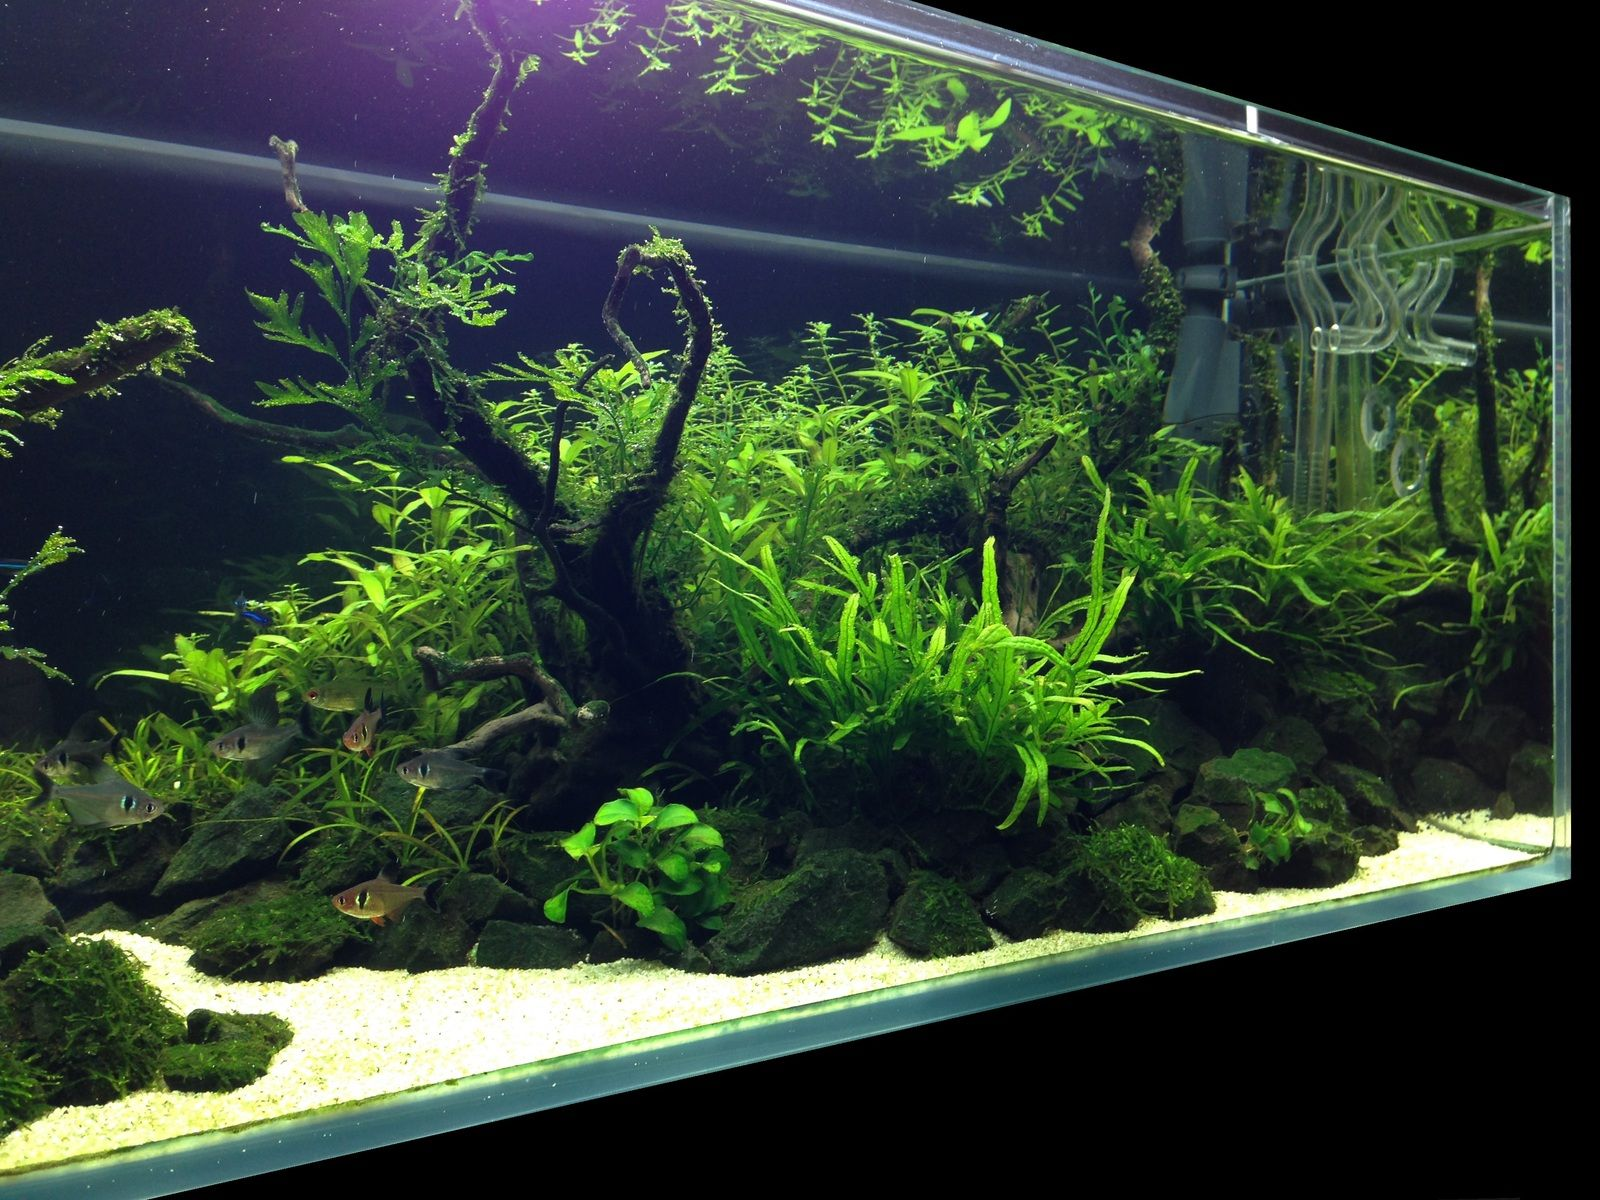 Planted tank nature aquarium aquascape aquarien for Plante aquarium